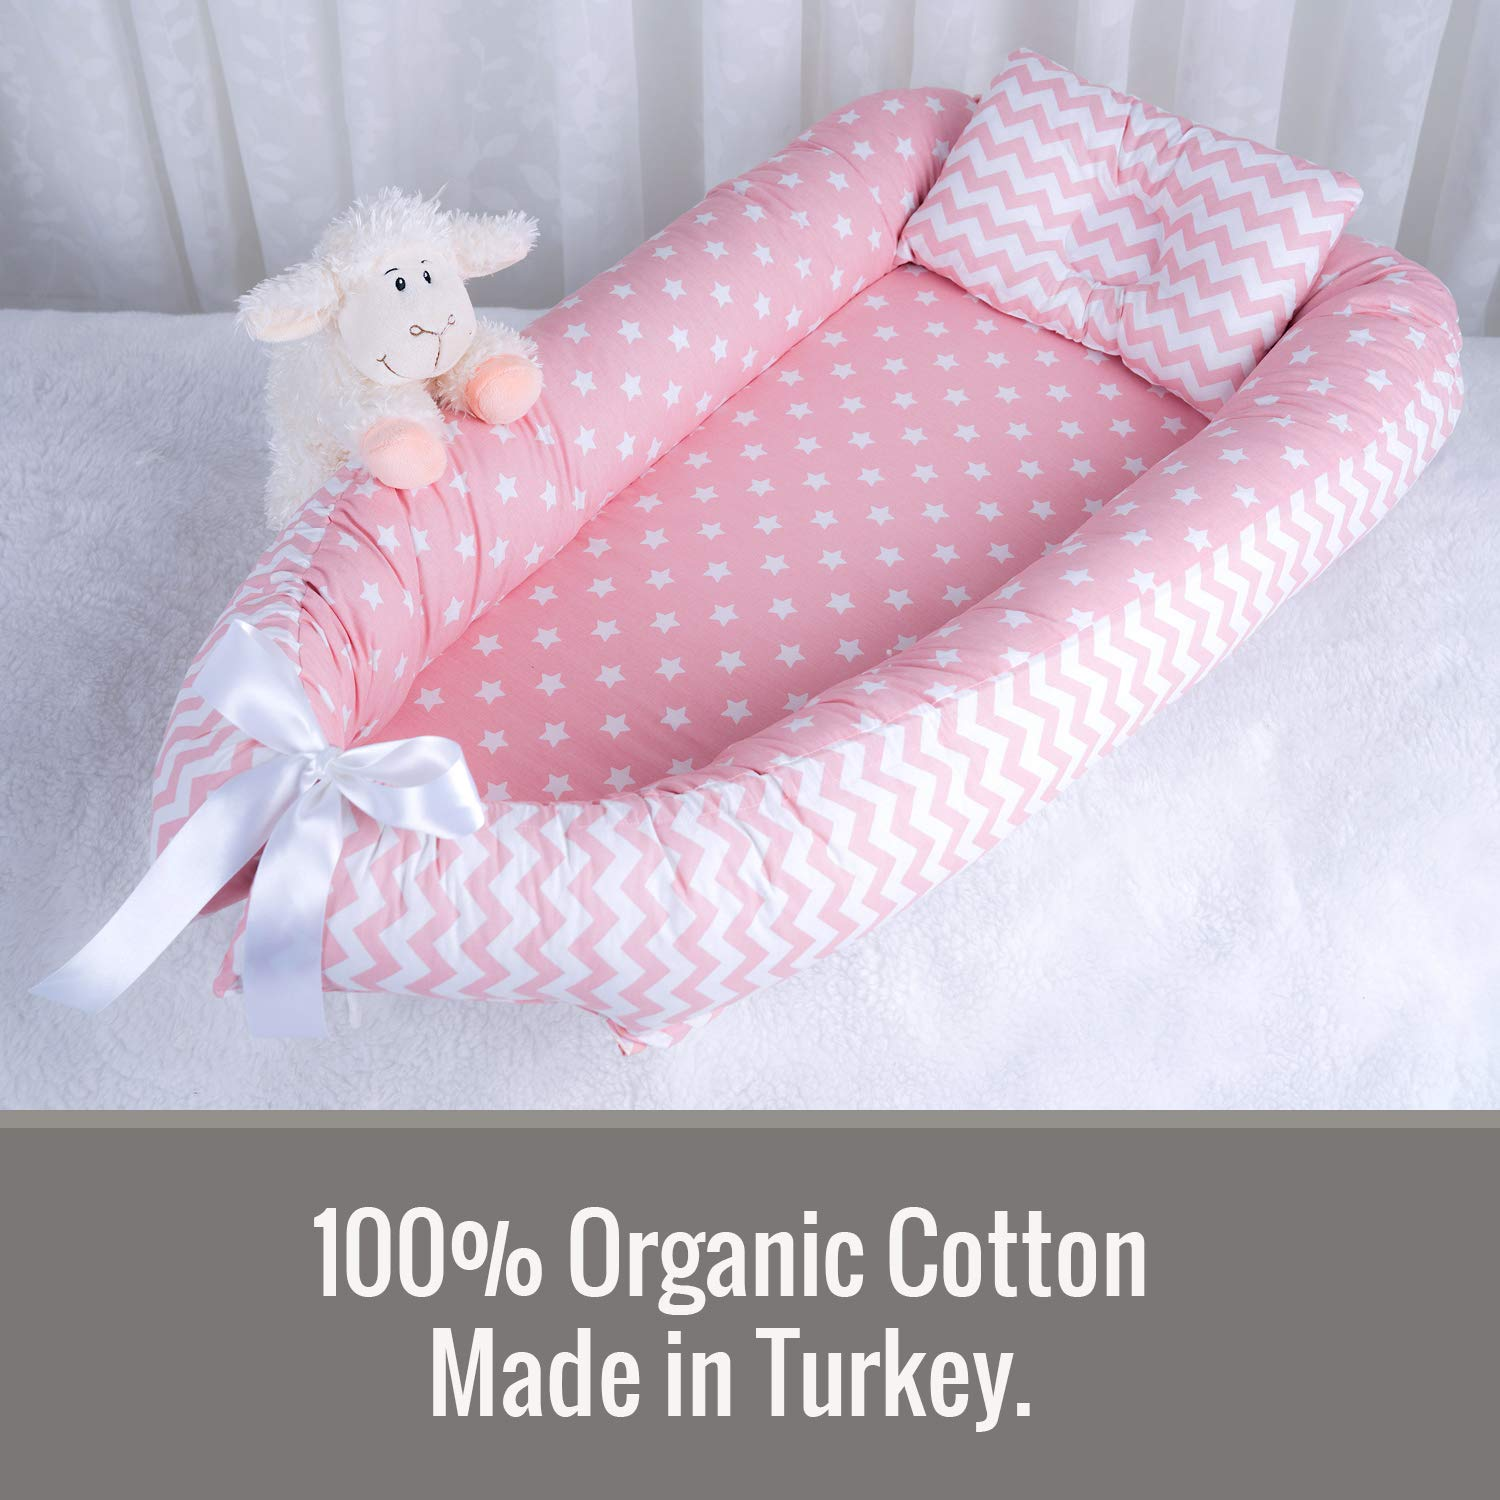 Baby Nest and with Bed Head Shaping Pillow 100/% Organic Soft Cotton Newborn Lounger Portable Crib Baby Bed for Travel and Co-Sleeping 0-12 Month Pink Baby Lounger Made in Turkey